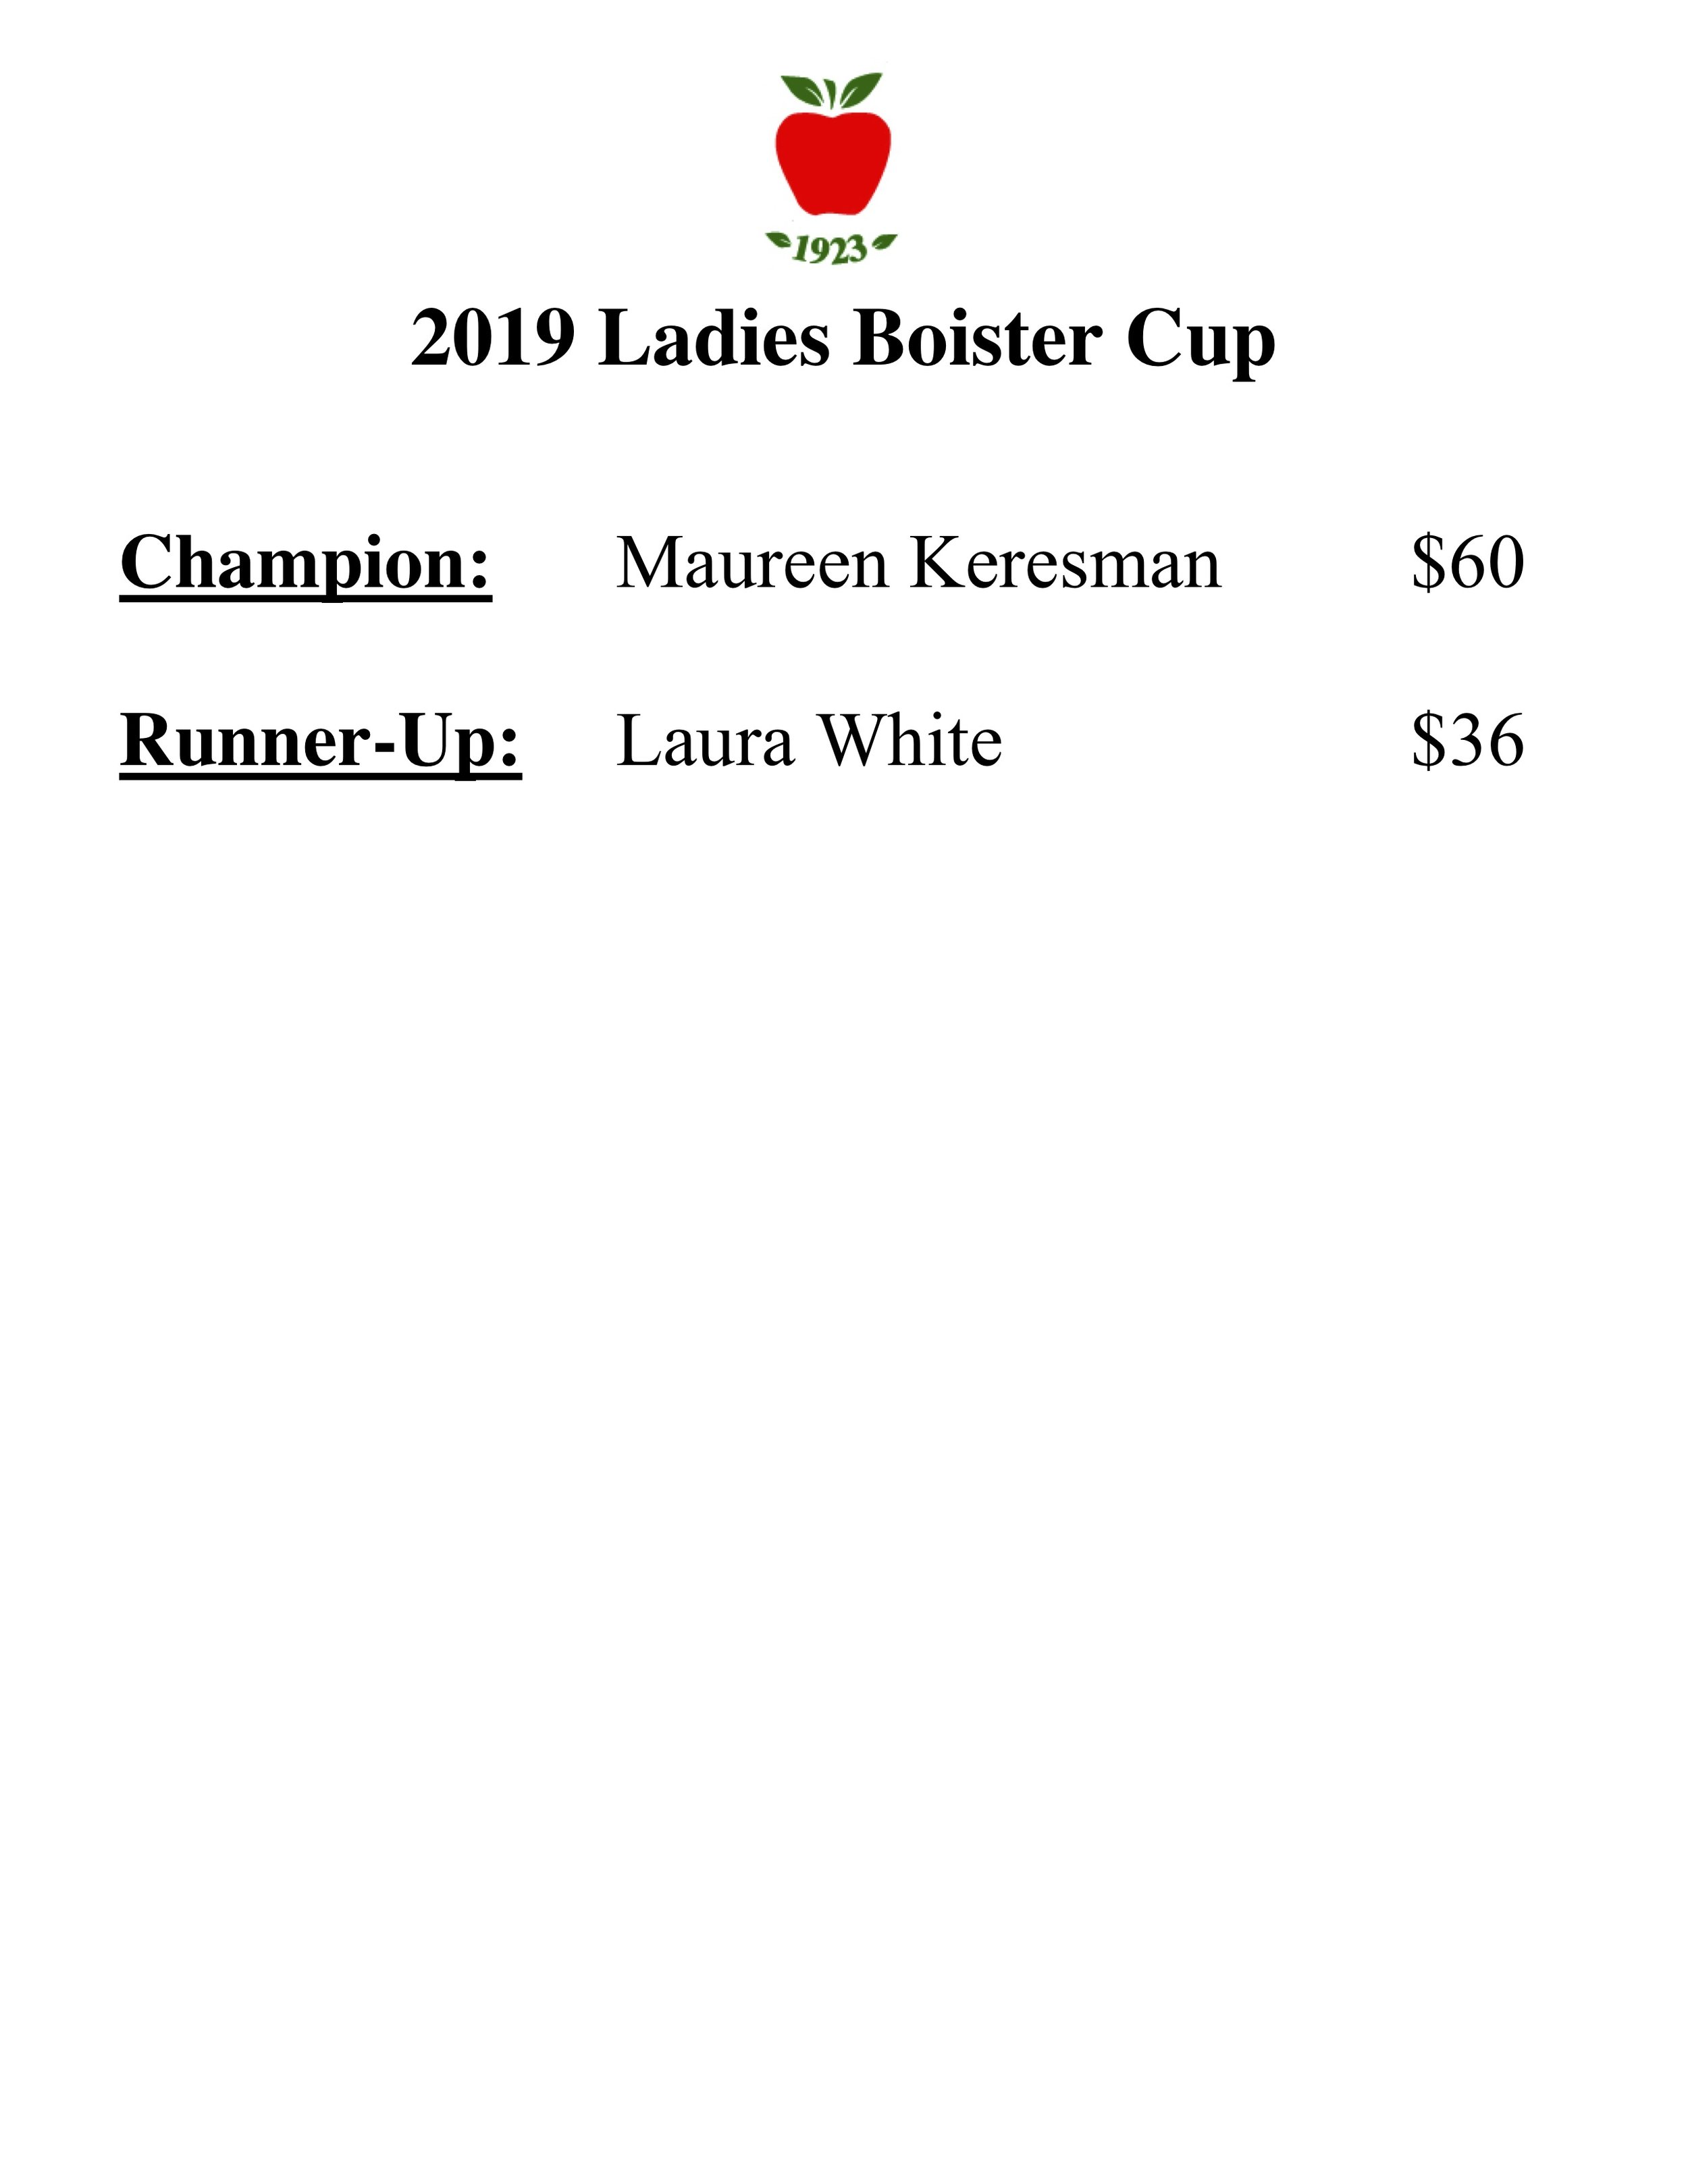 2019 boister cup results.jpg